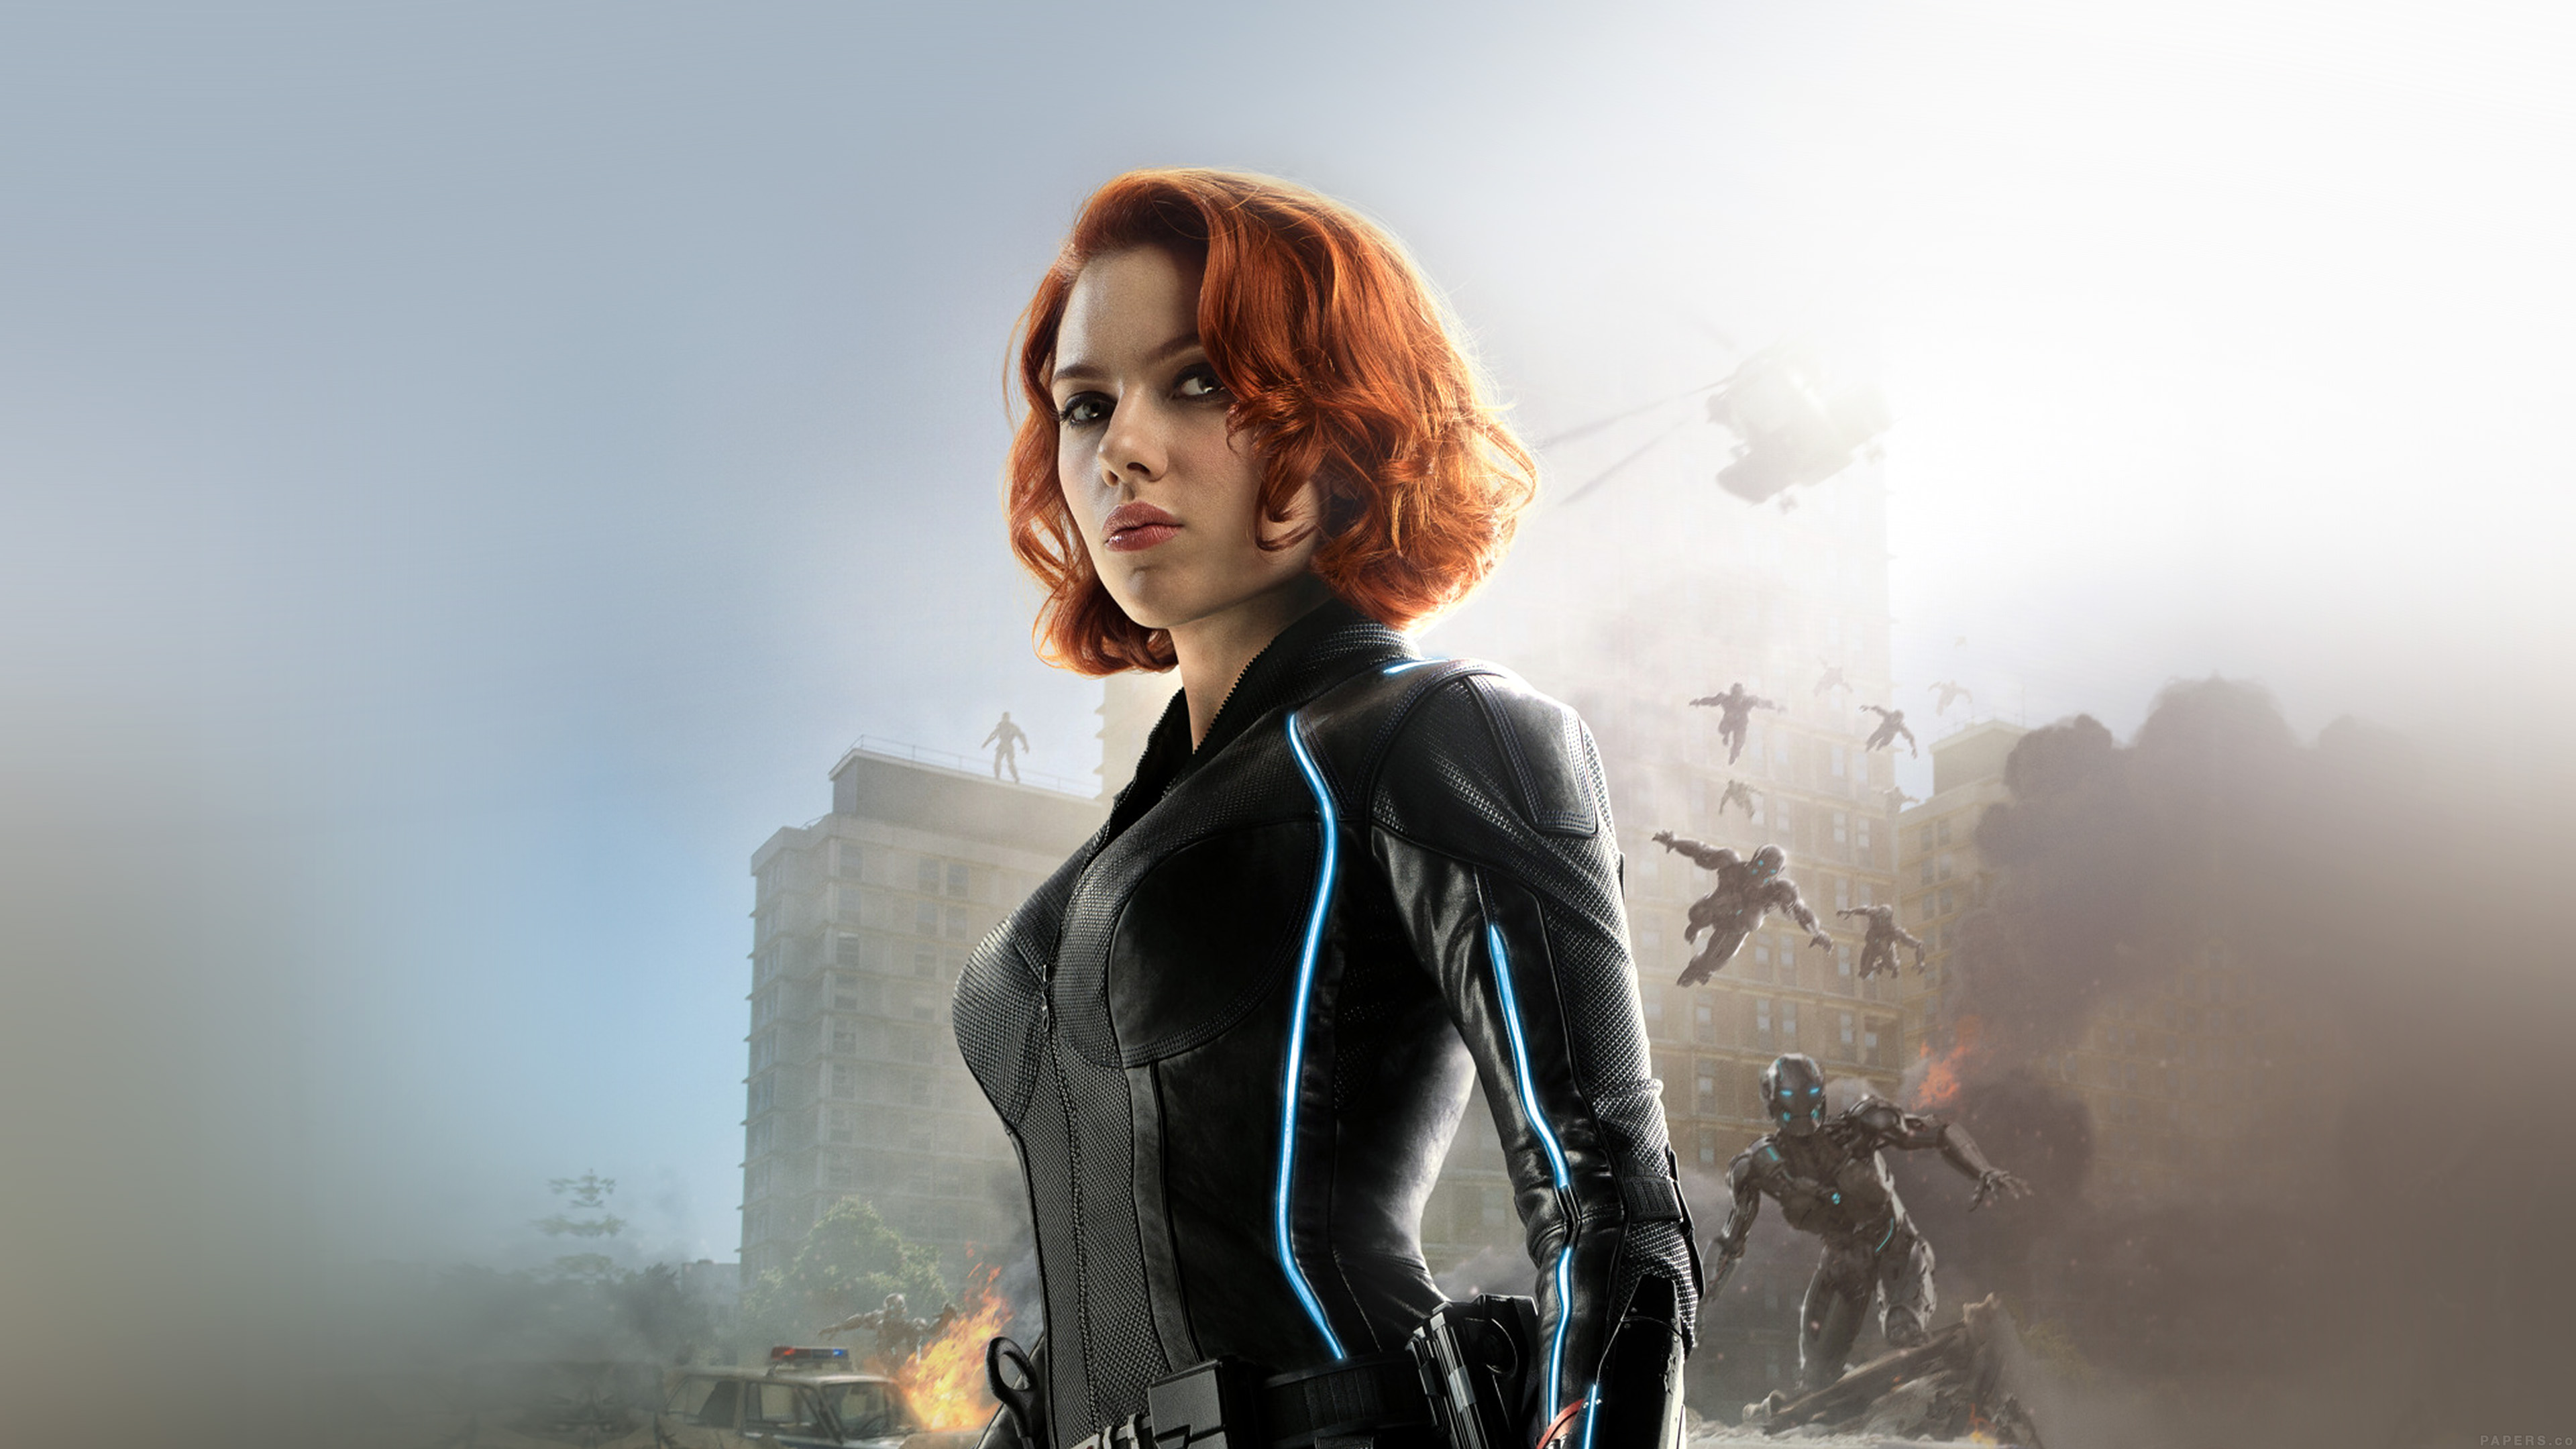 Cute Summer Wallpapers For Girls Ak77 Avengers Age Of Ultron Scarlett Johansson Black Widow